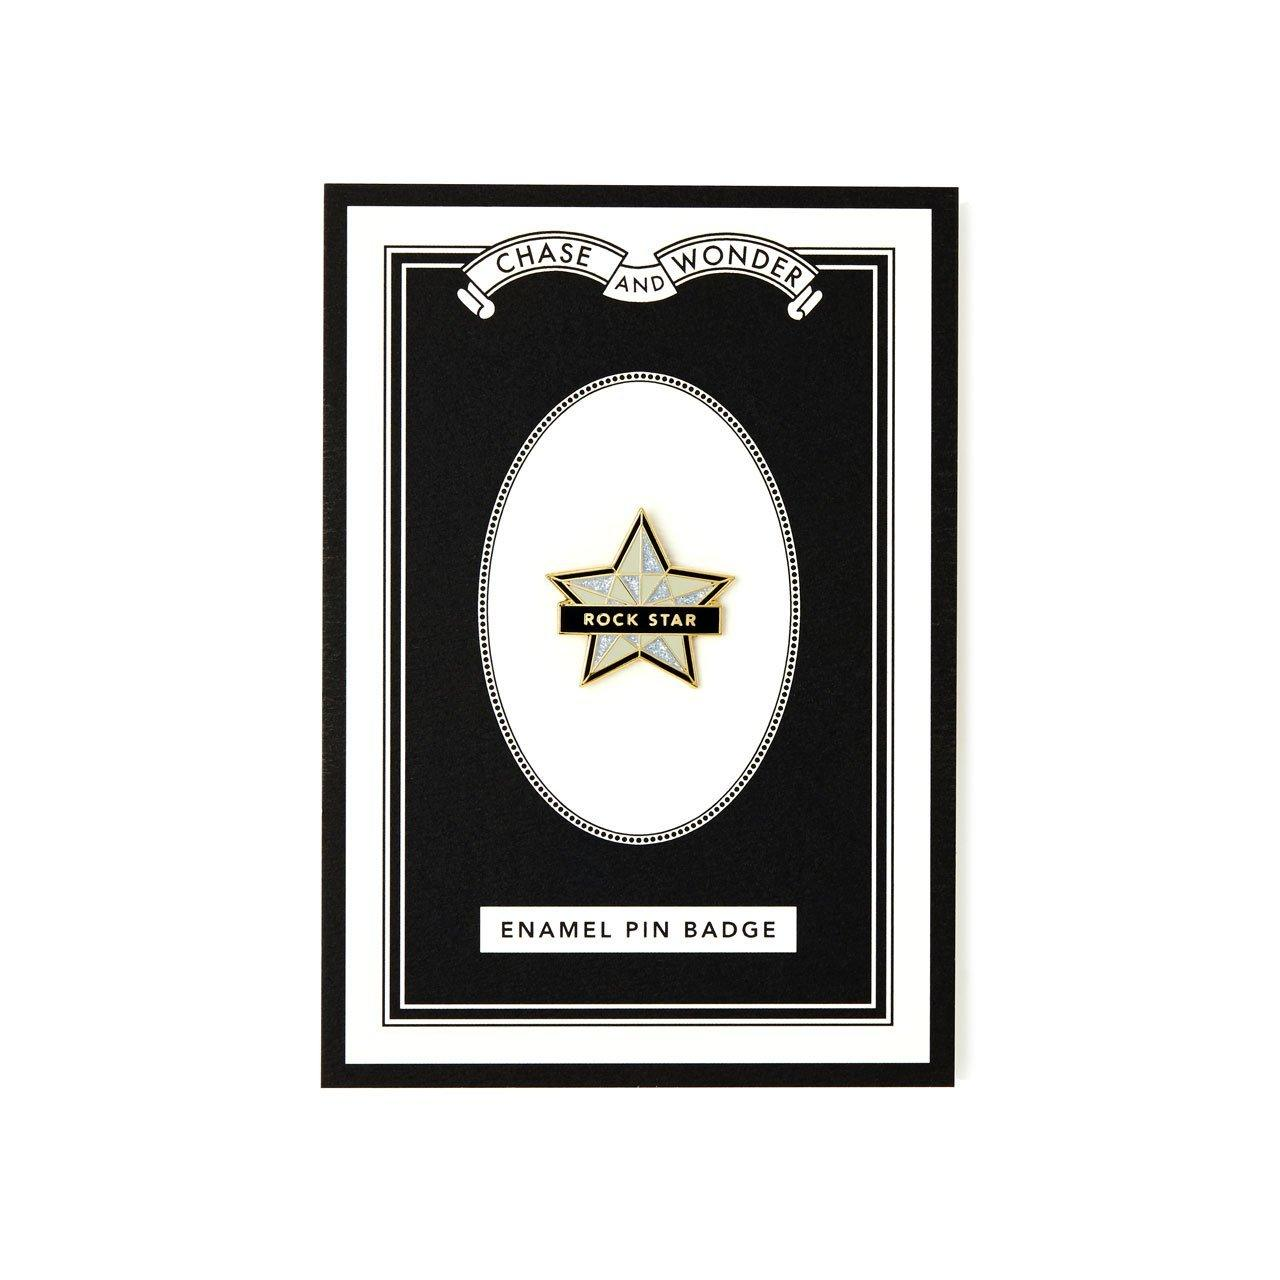 Rock Star Enameled Pin Badge - Chase and Wonder - Proudly Made in Britain